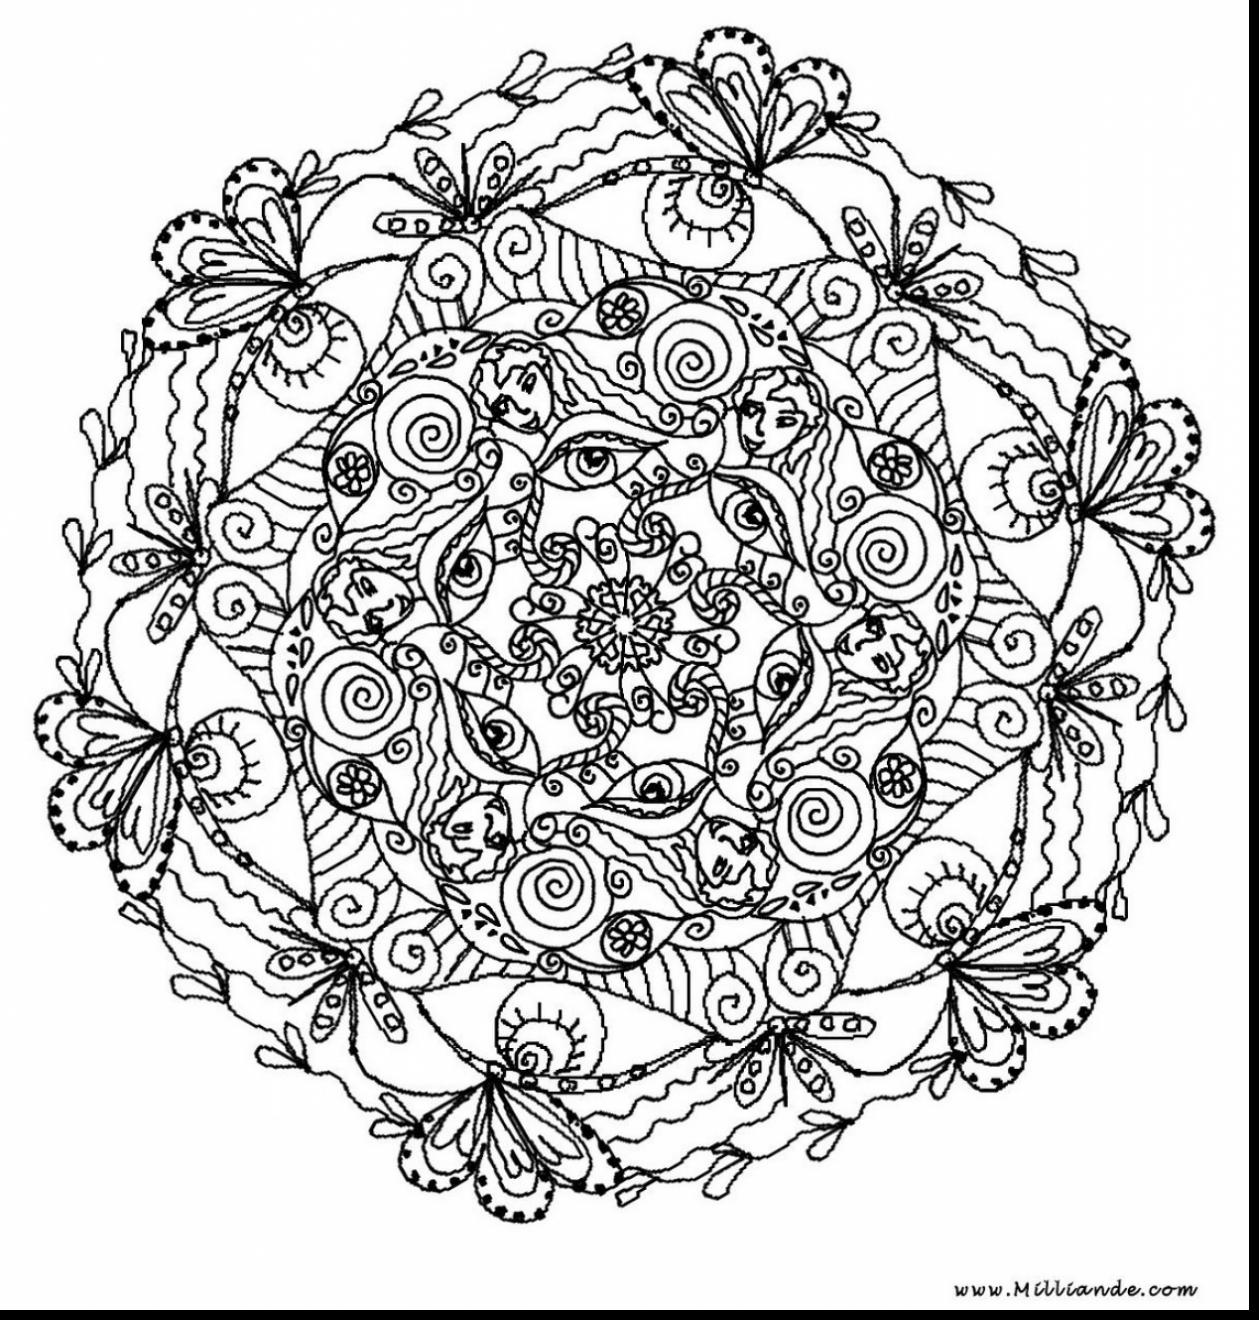 1259x1320 Zen Anti Stress To Print Drawing Flowers And Free